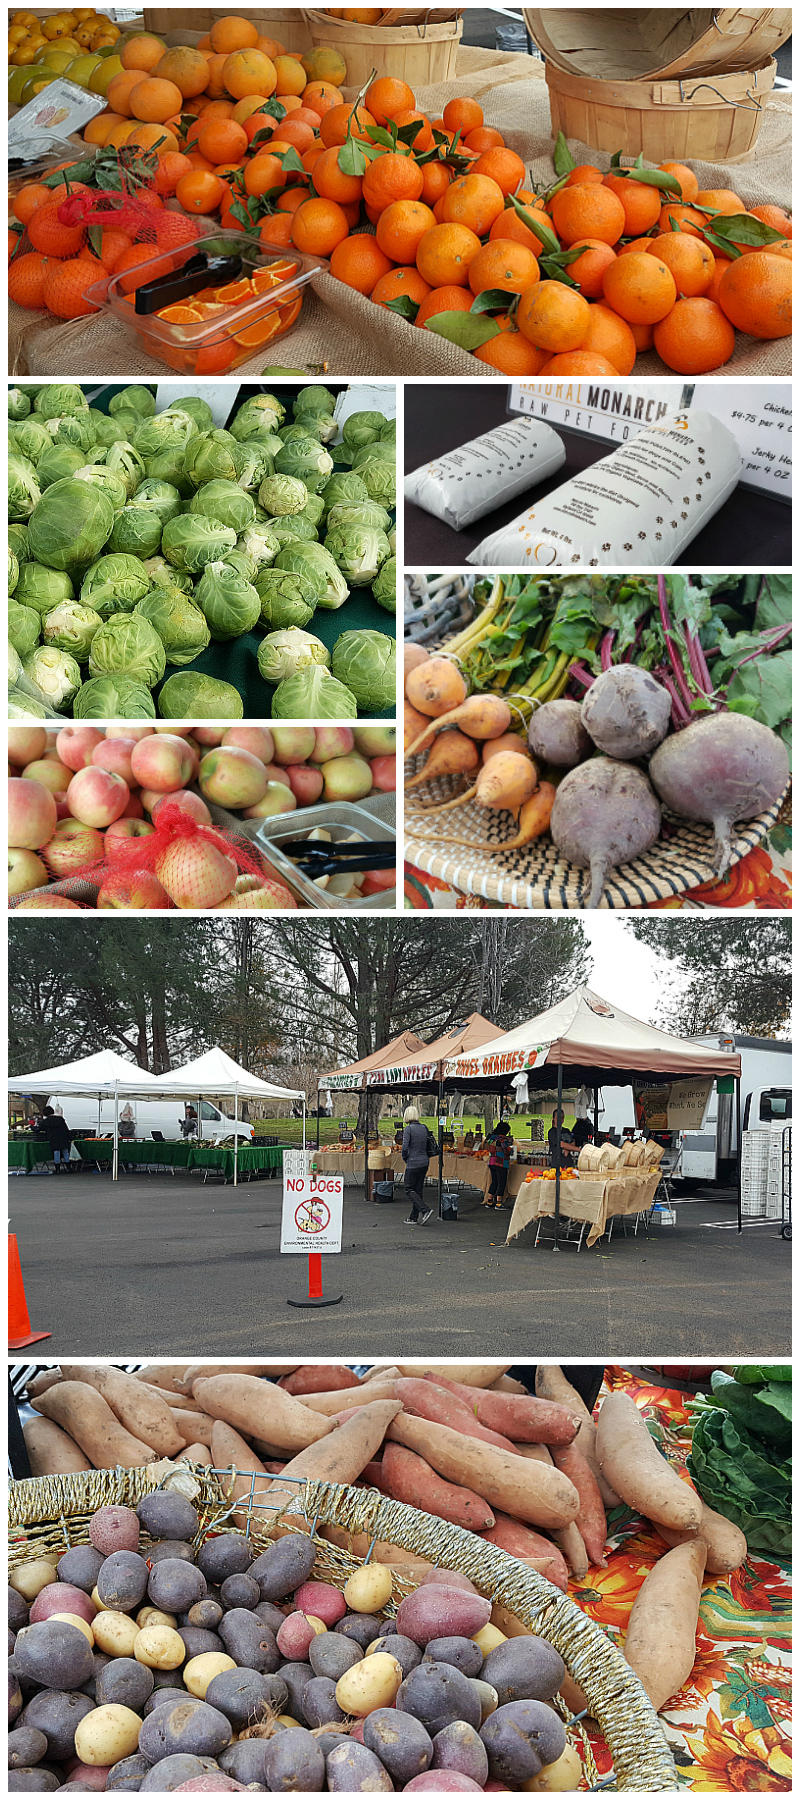 Farmer's Market at Irvine Regional Park in Orange County, California